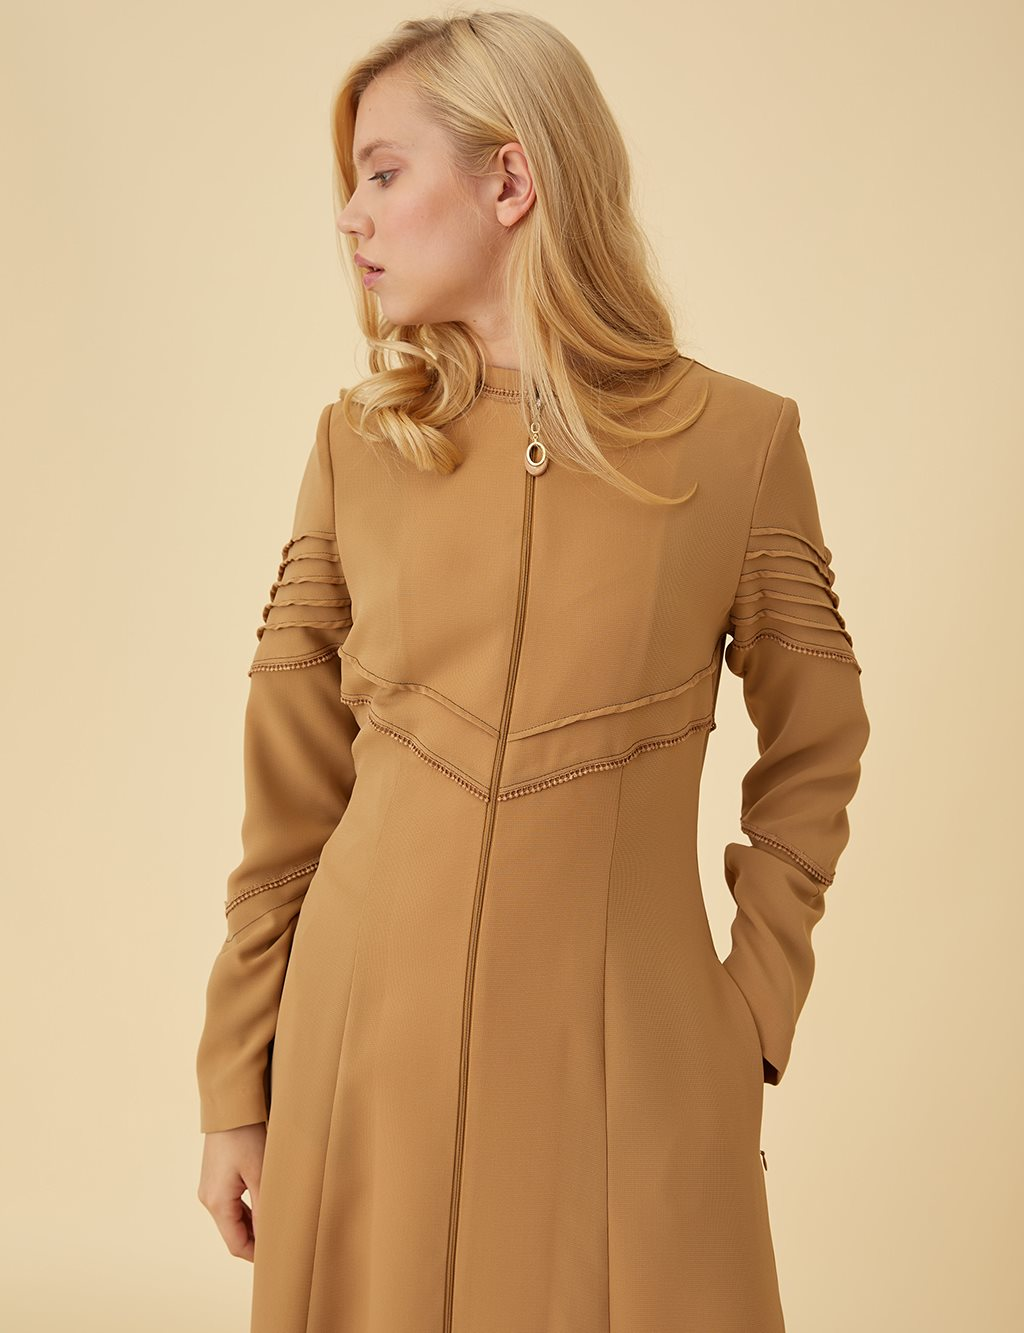 Zipper Detailed Overcoat Cream B9 15123